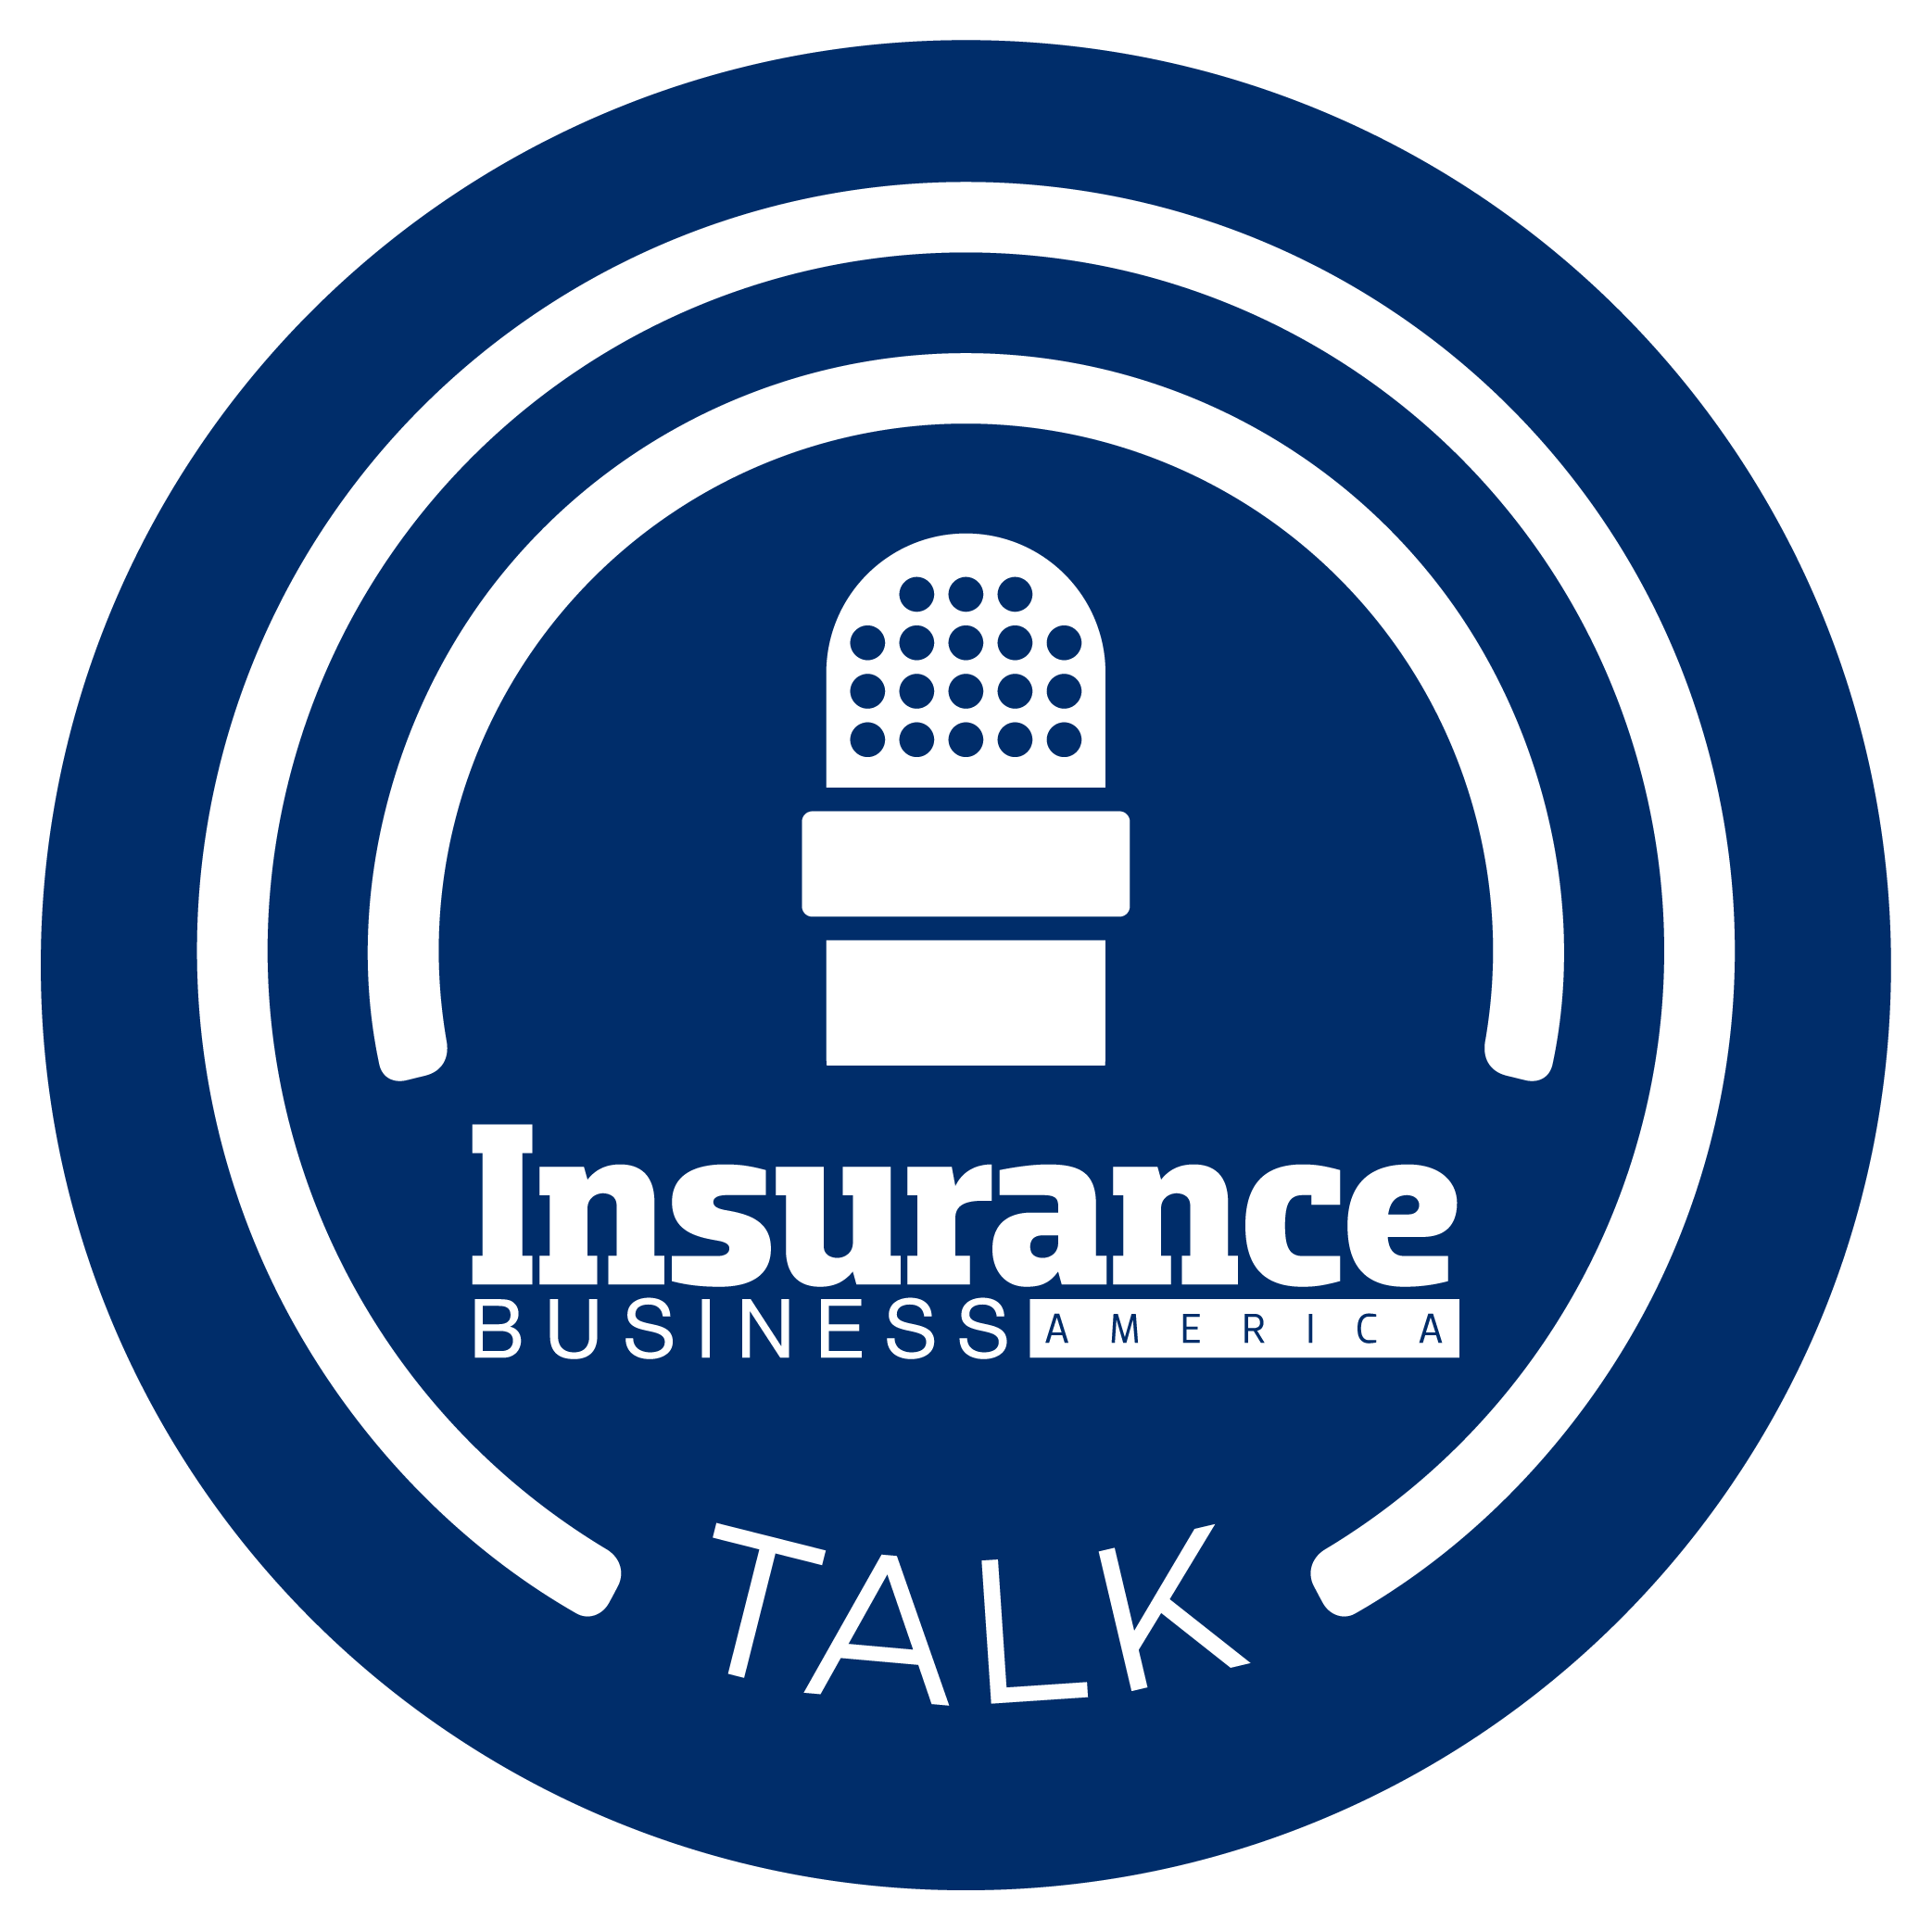 Episode 5 - The changing face of US healthcare insurance